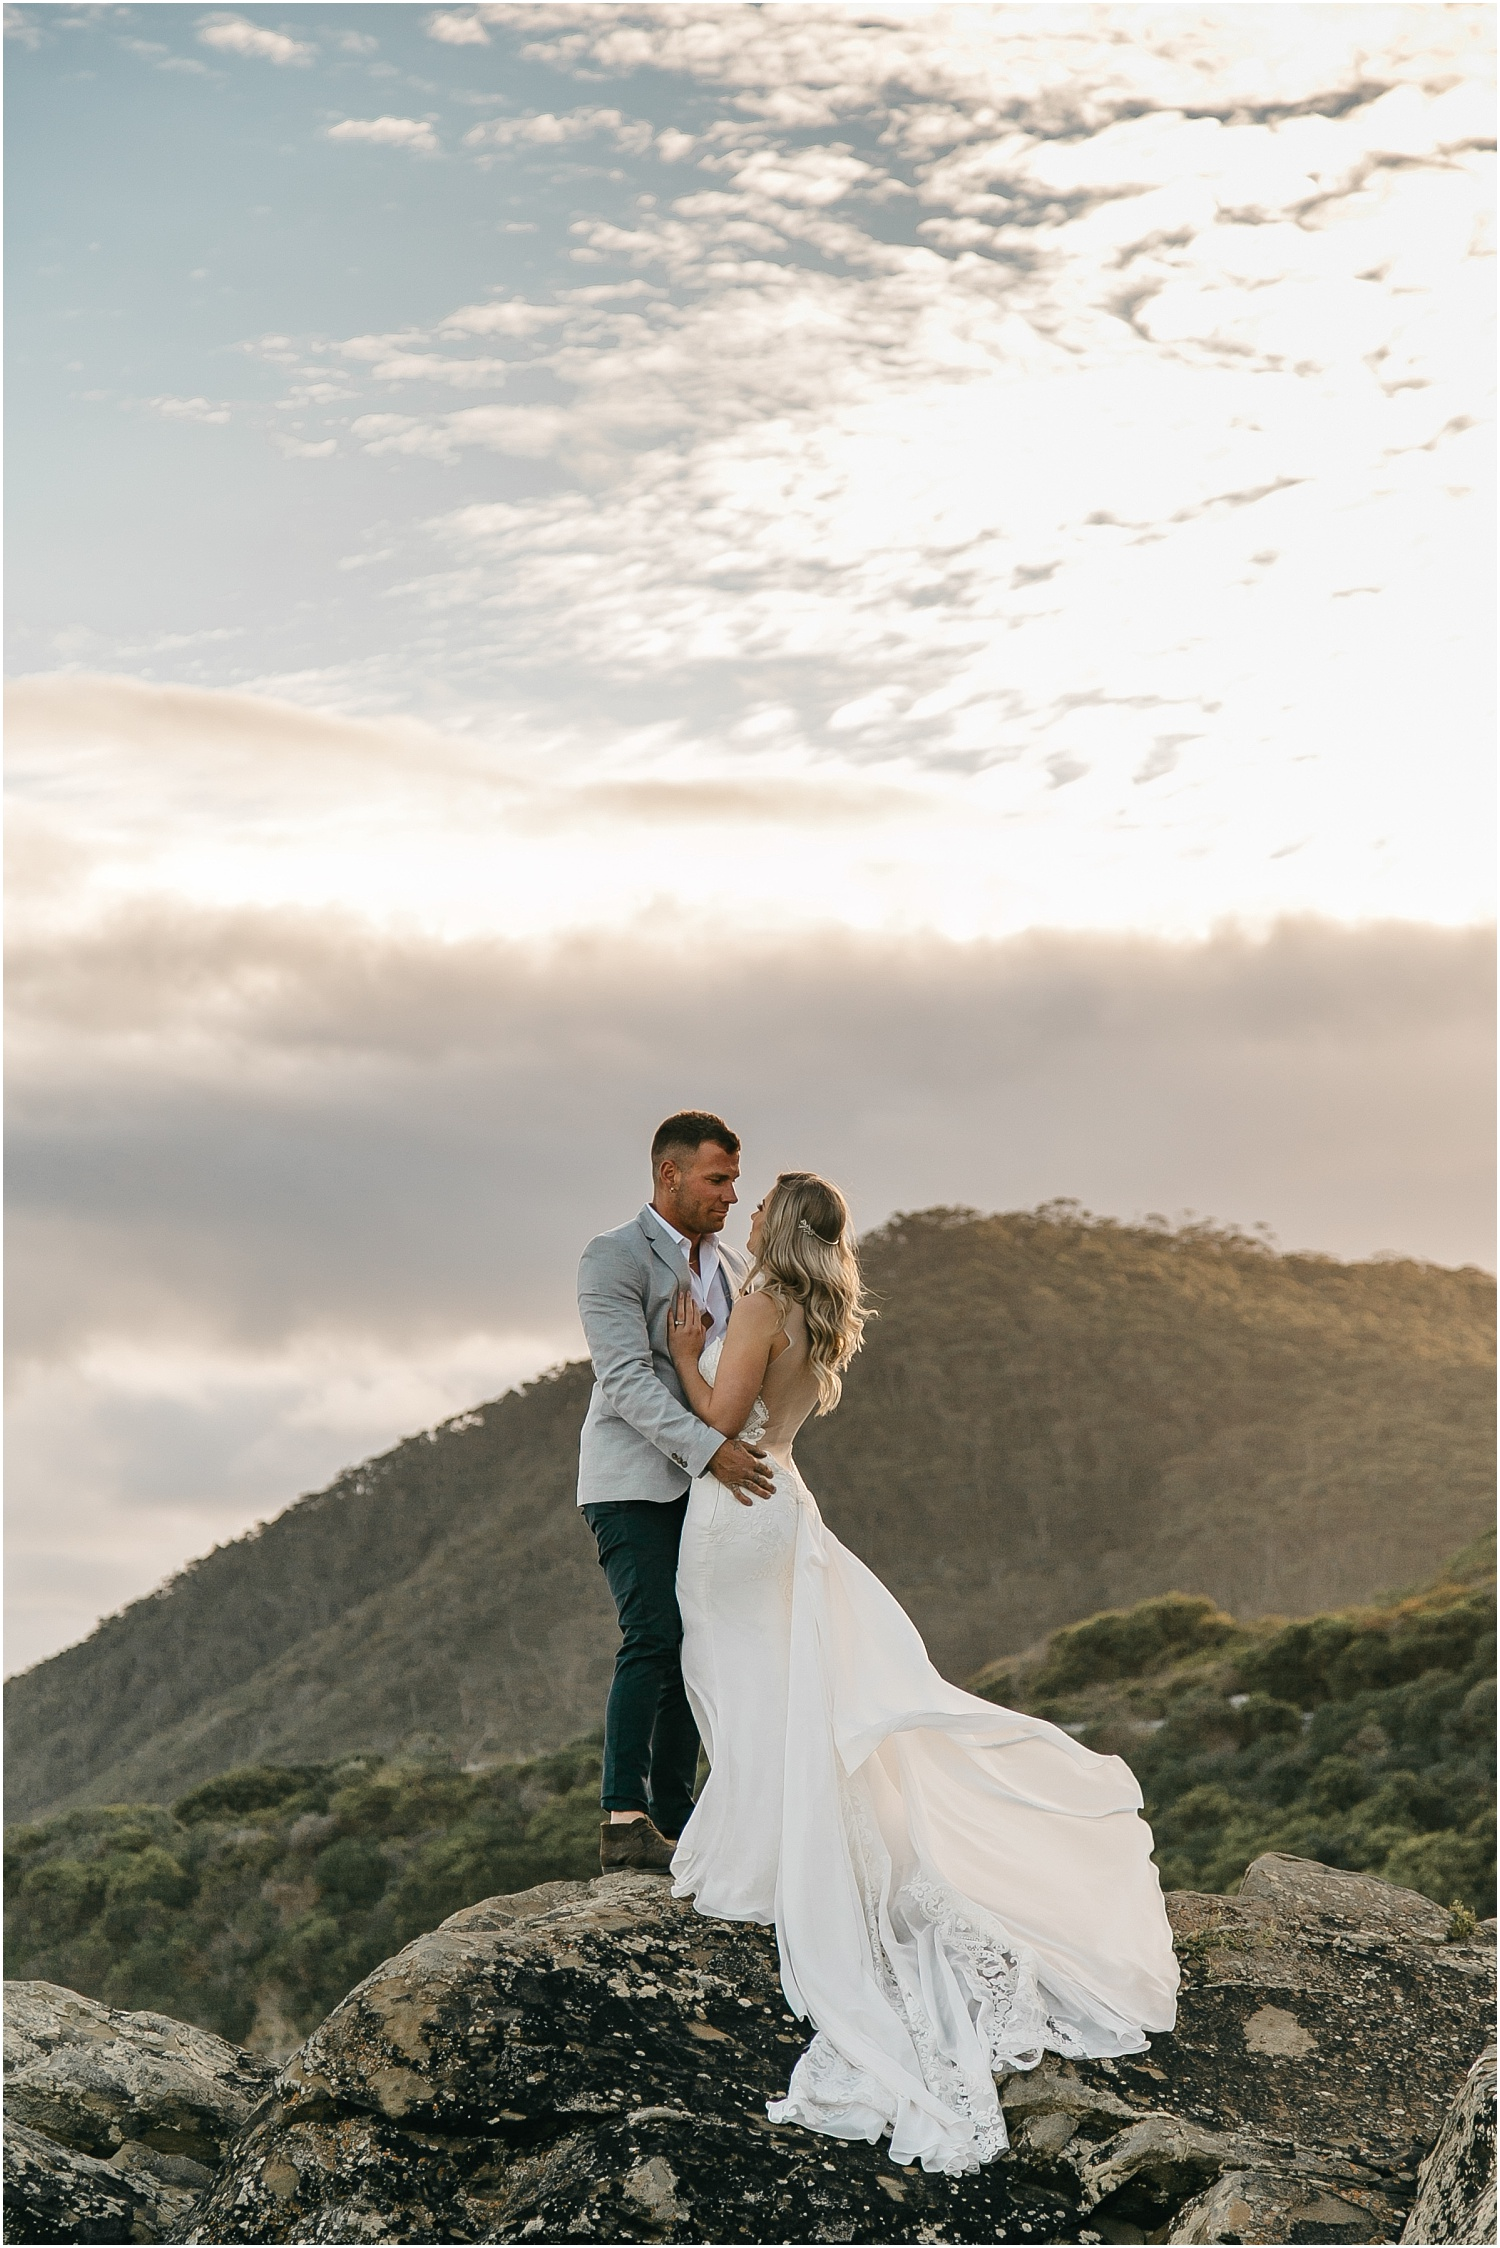 Renee and Ash's real elopement in Lorne on the Great Ocean Roadwith the ceremony at erskin falls._0108.jpg